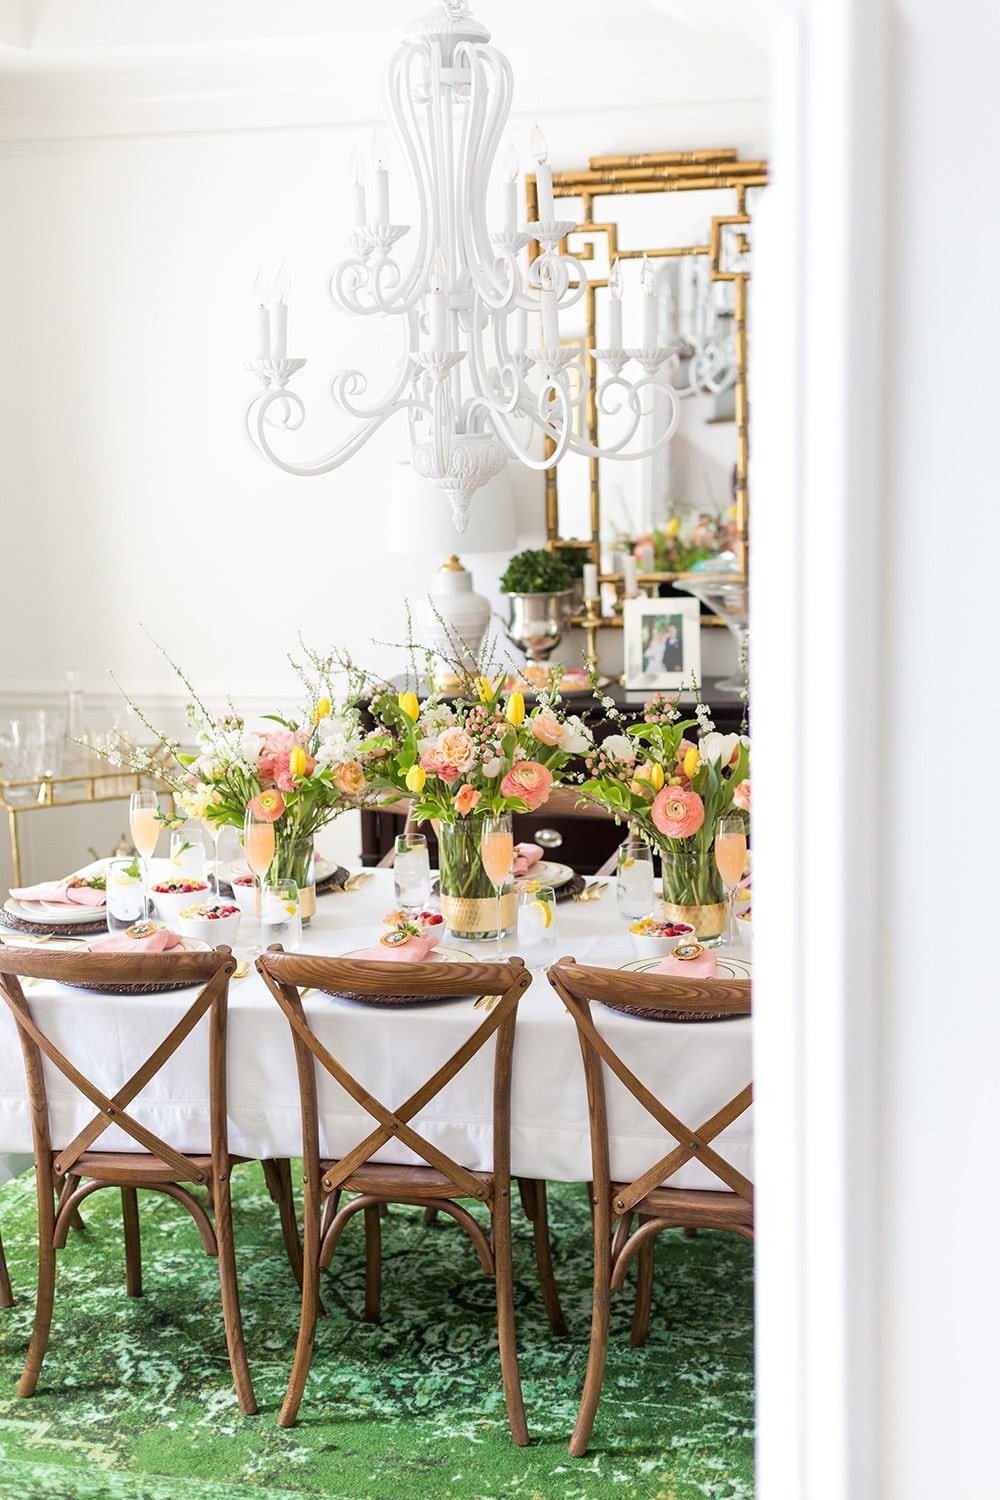 Mother's Day Brunch Tablescape with Flowers